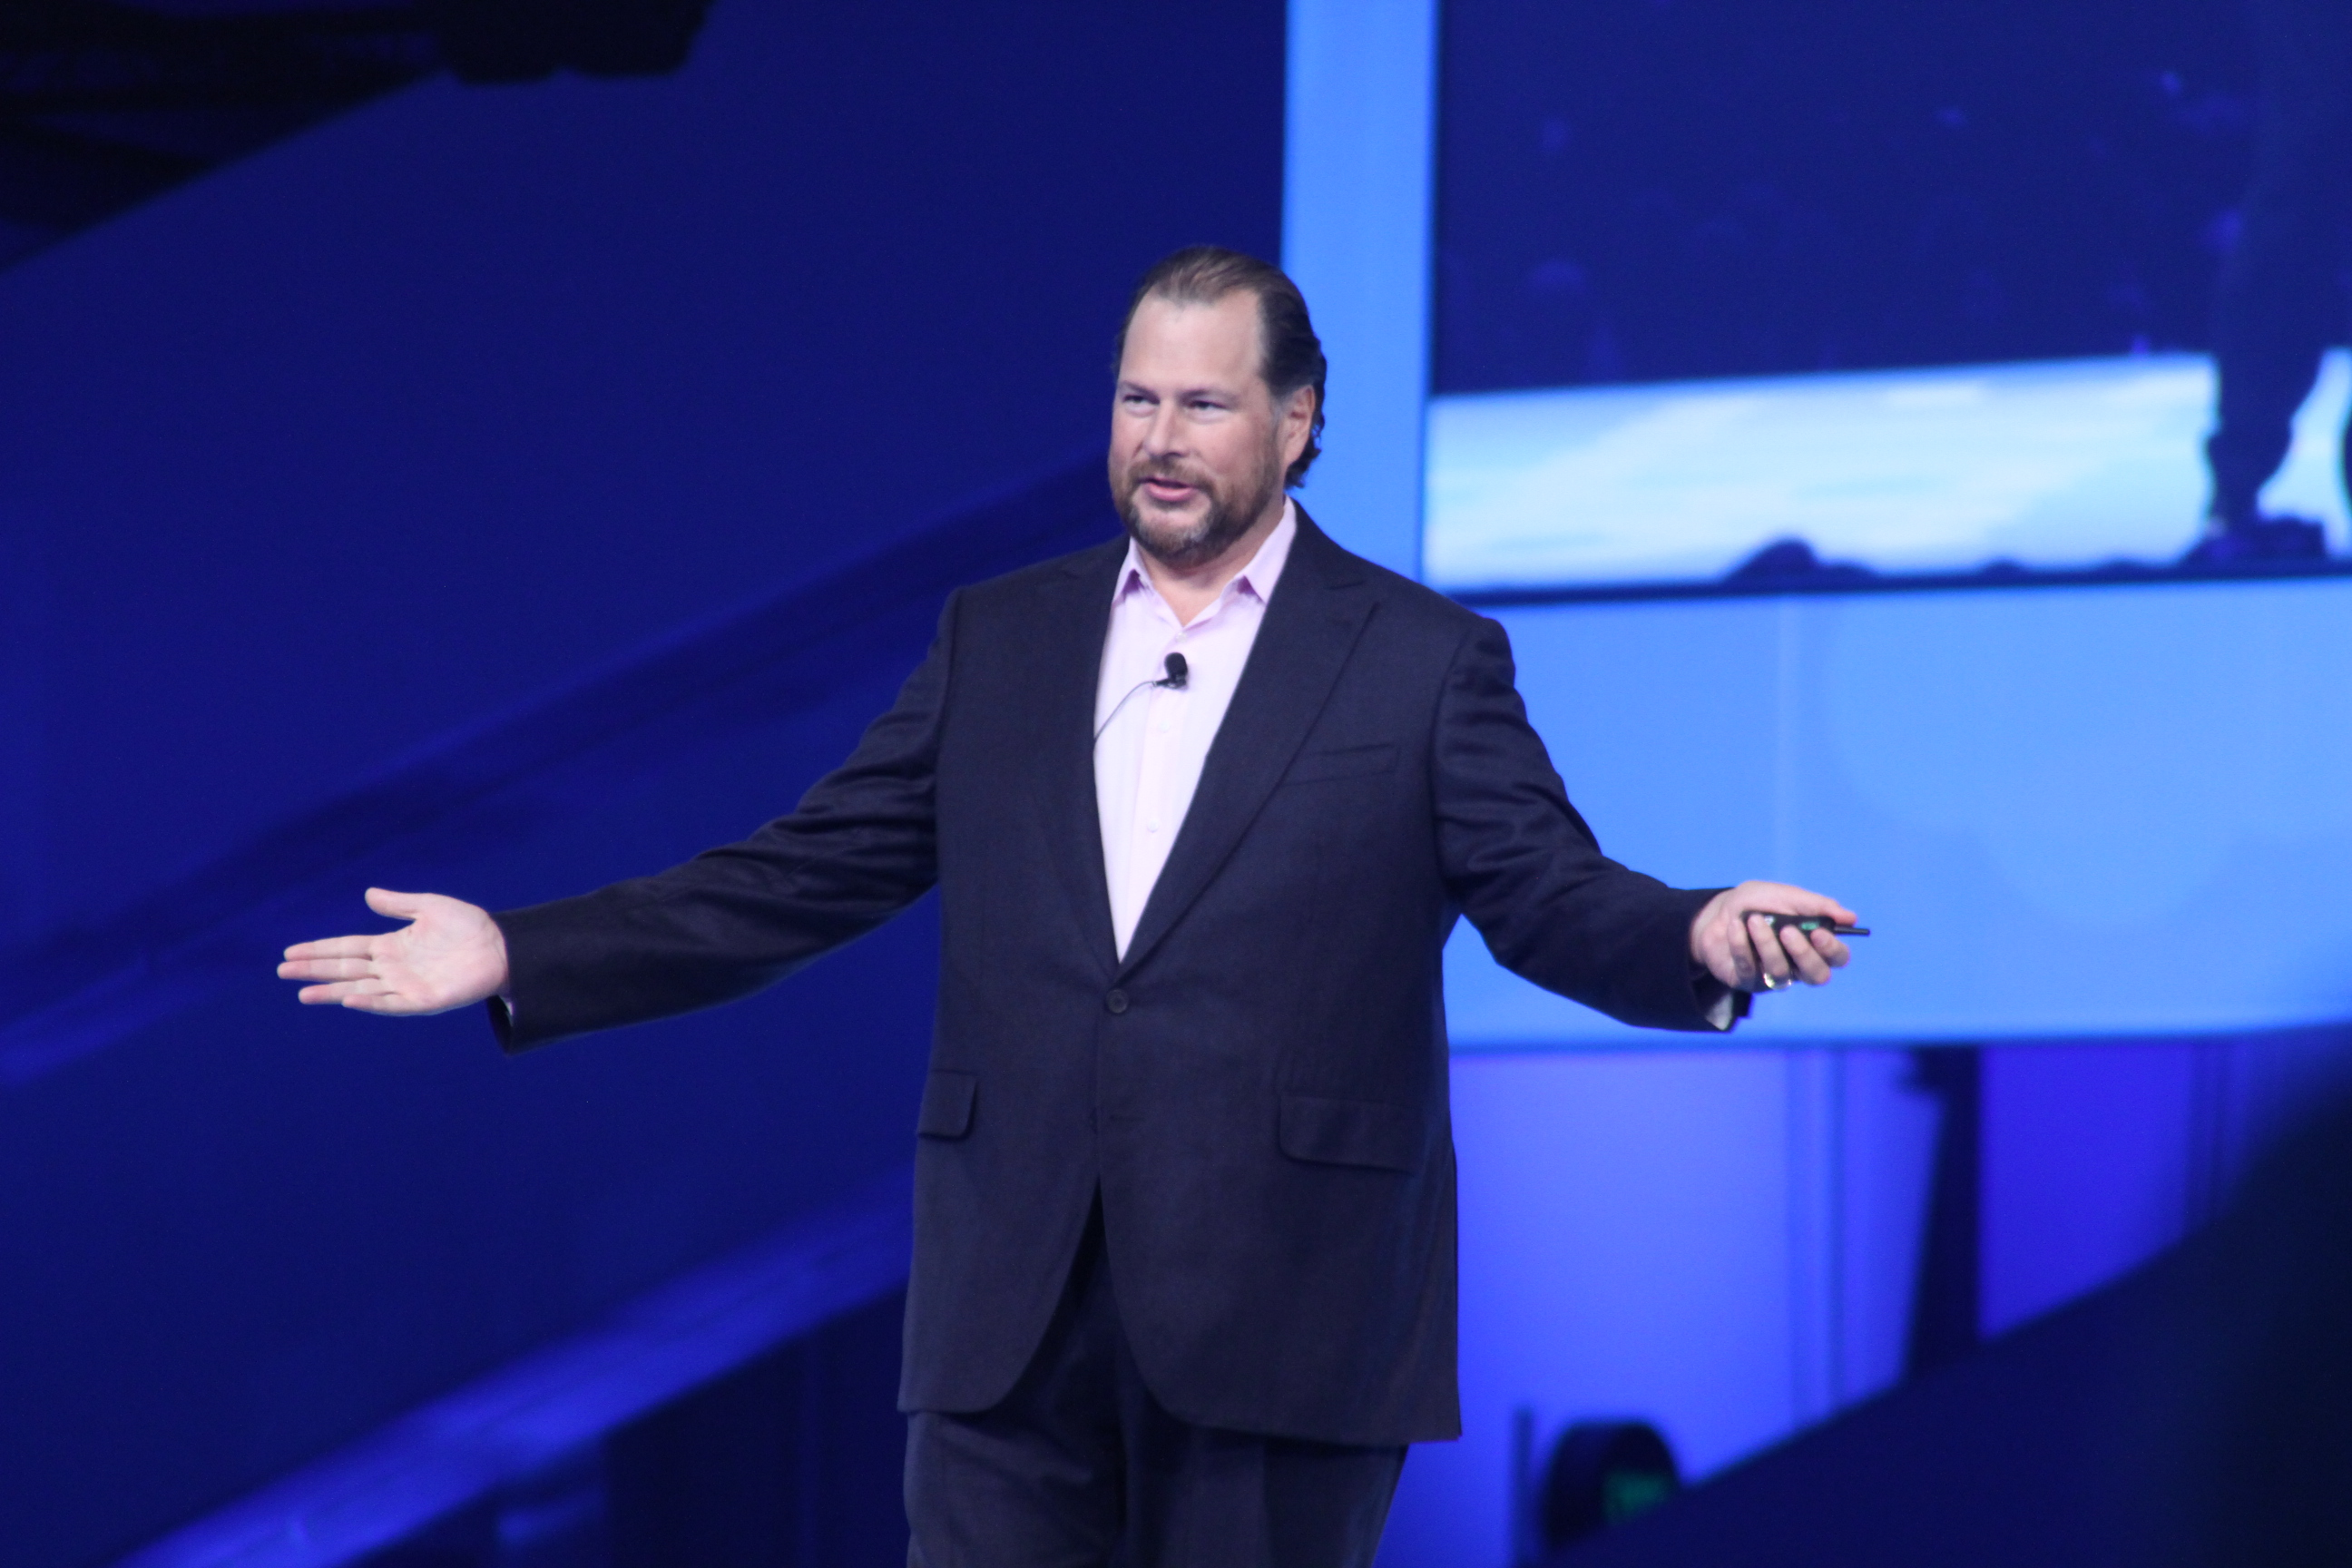 Salesforce CEO Marc Benioff delivering his keynote address at the Dreamforce conference on September 16, 2015 in San Francisco, CA.